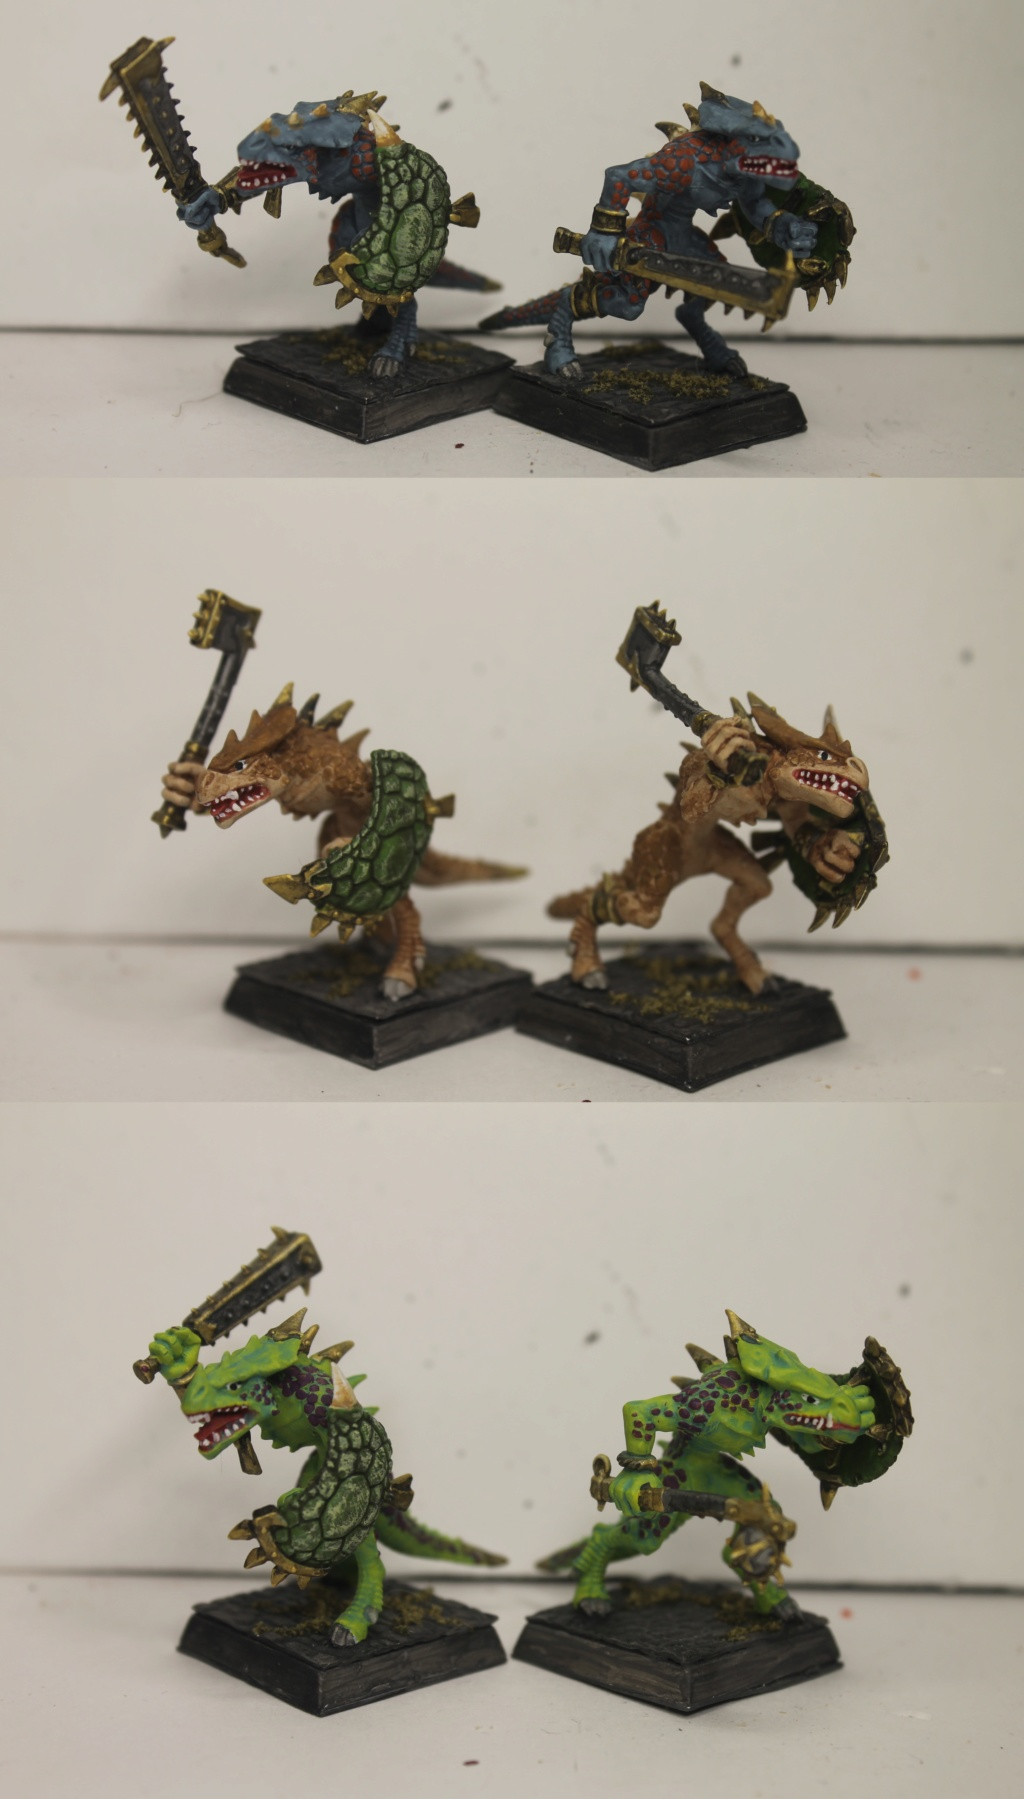 Doc's Lizardmen Warband Lizard15